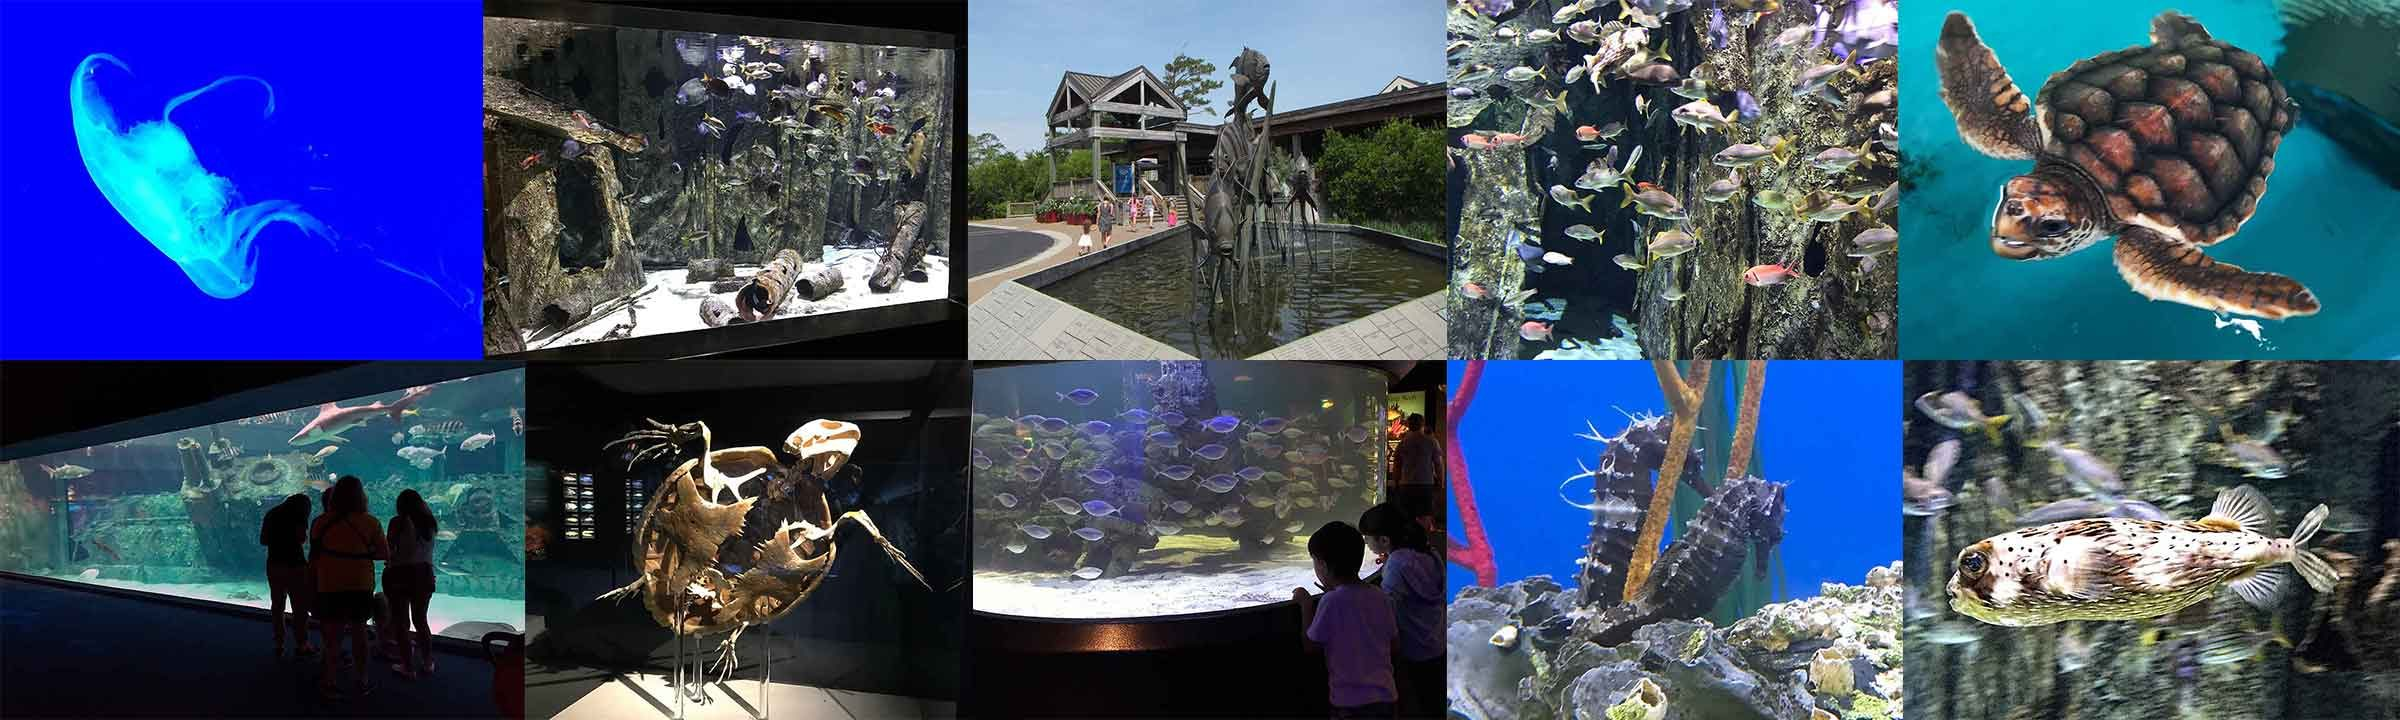 North Carolina Aquarium Banner